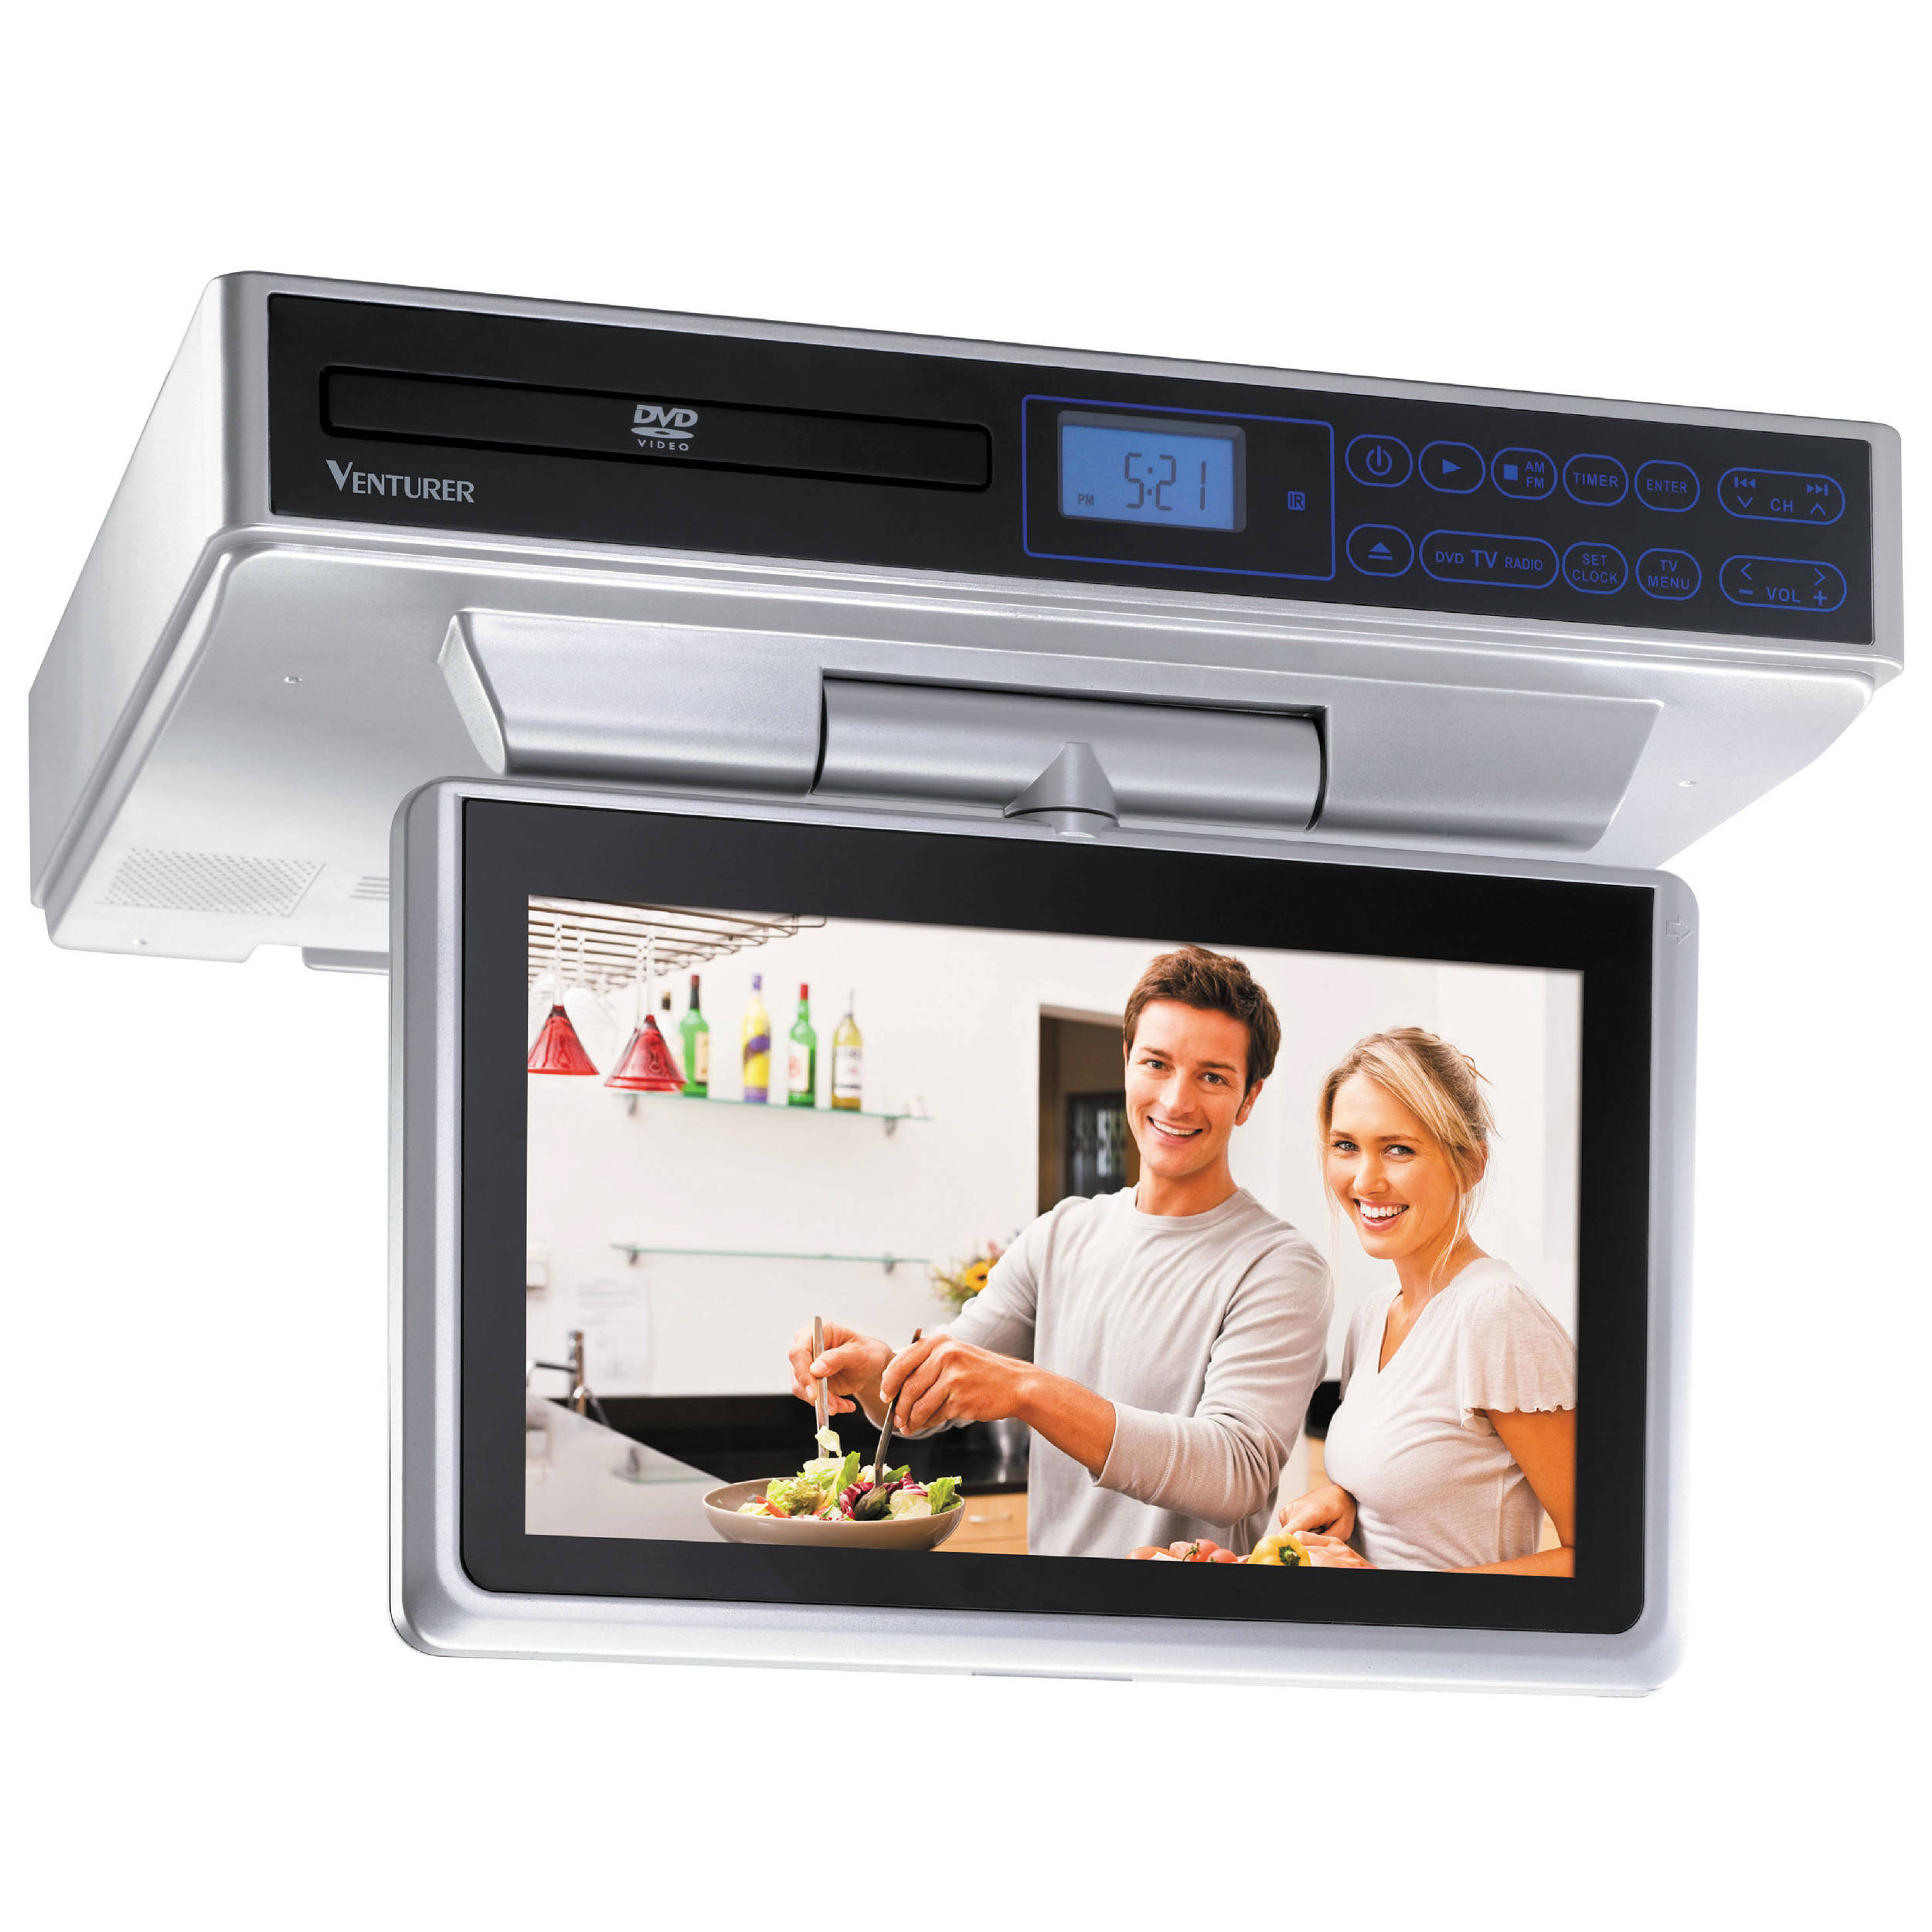 kitchen cabinet dvd venturer klv39103 10 quot kitchen lcd tv dvd combo klv39103 b amp h 18720